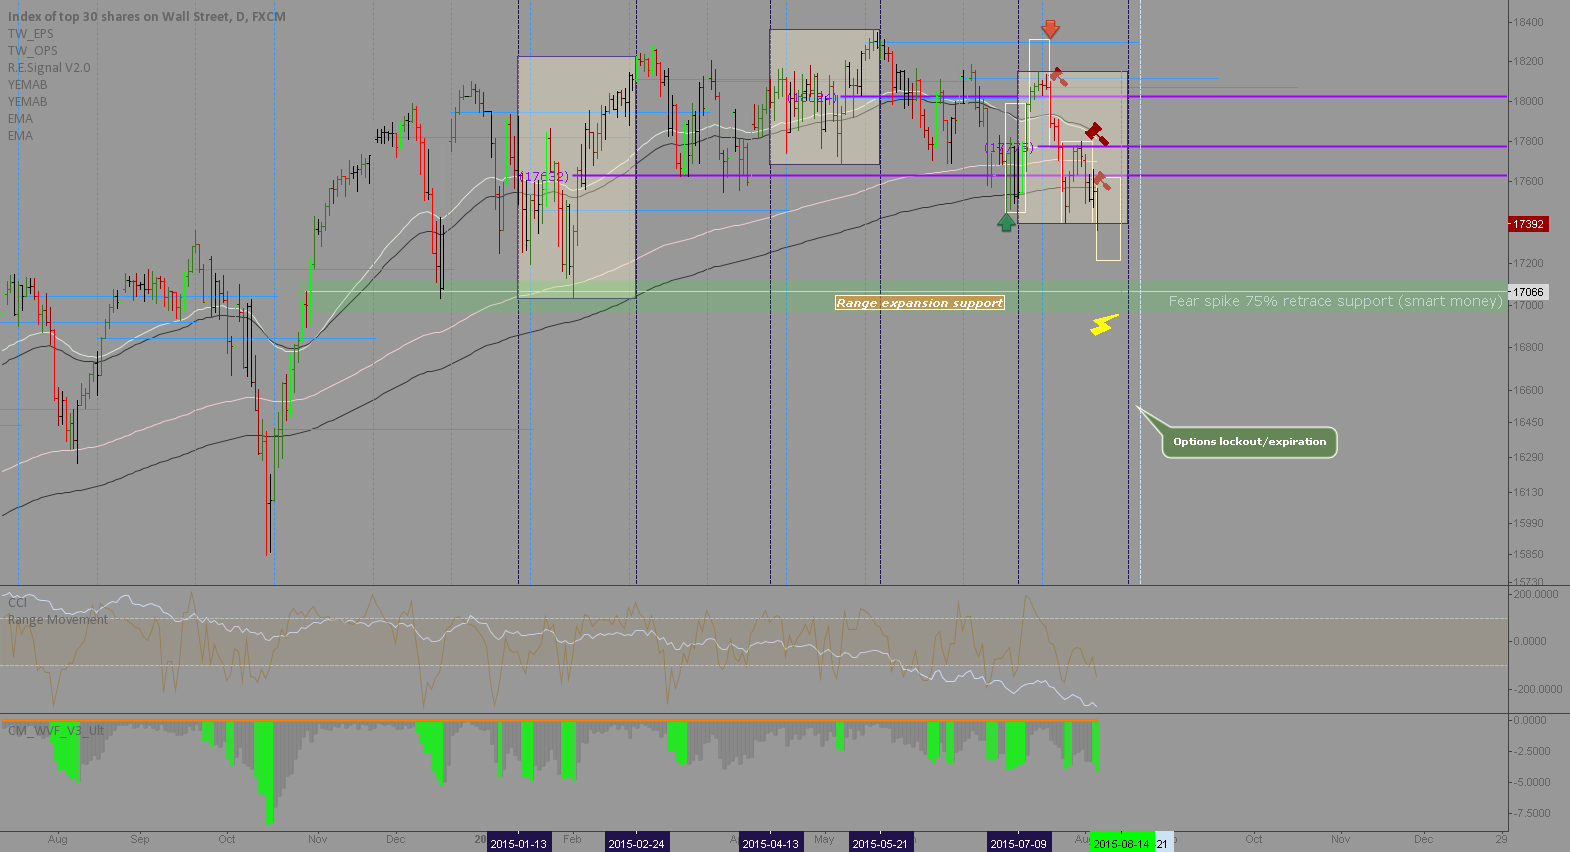 Dow Jones Industrials: Downtrend until the 14th